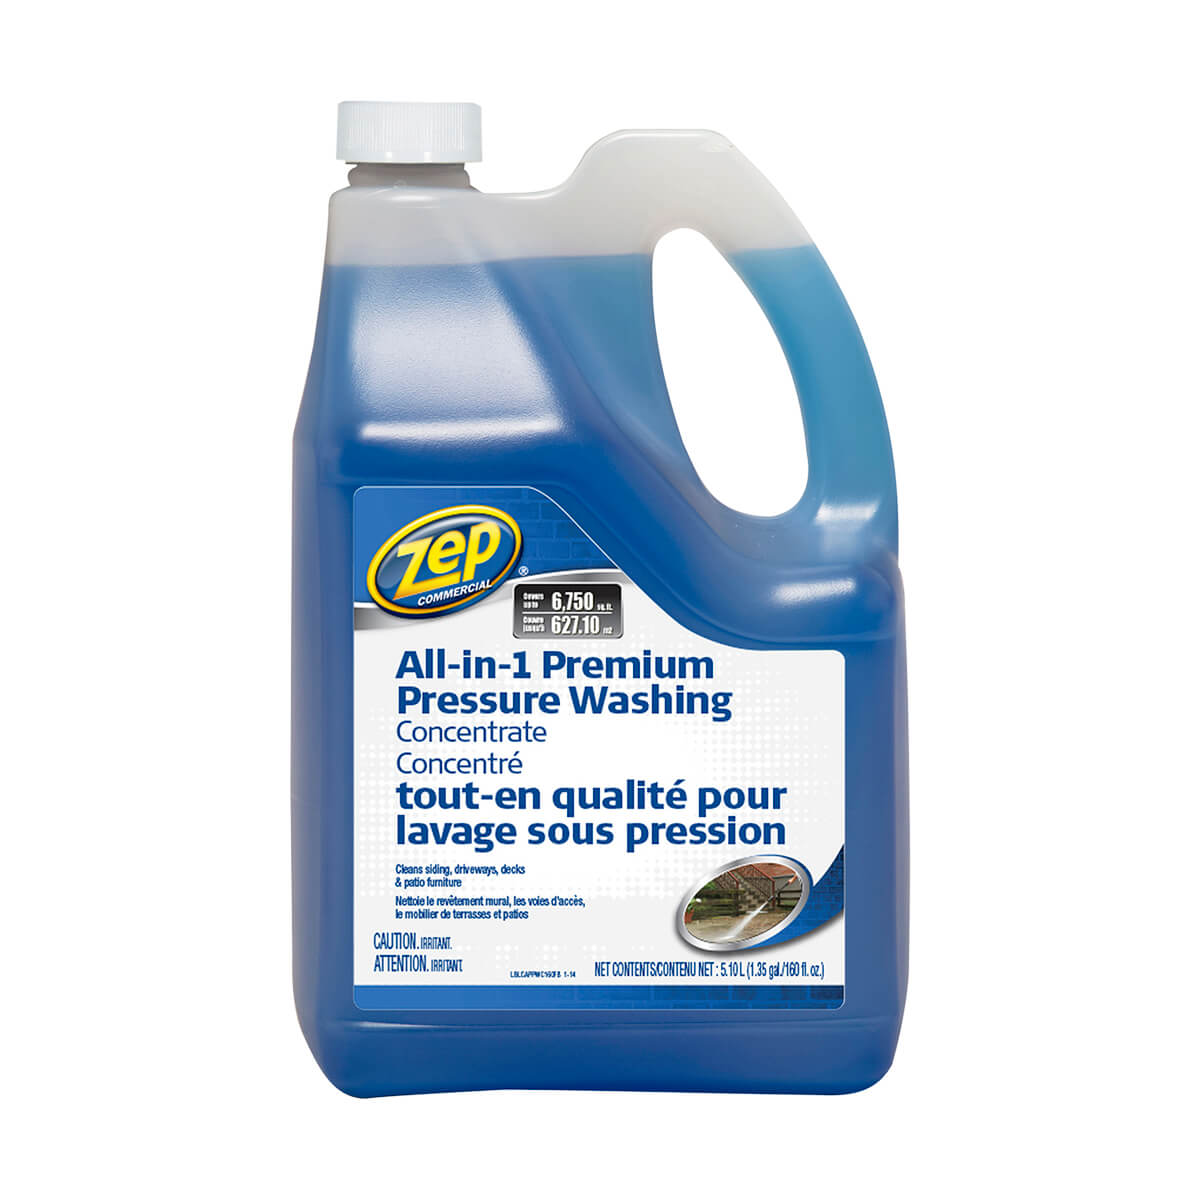 Zep Commercial All-in-One Pressure Wash Concentrate 5.1 L  - CAPPWC160